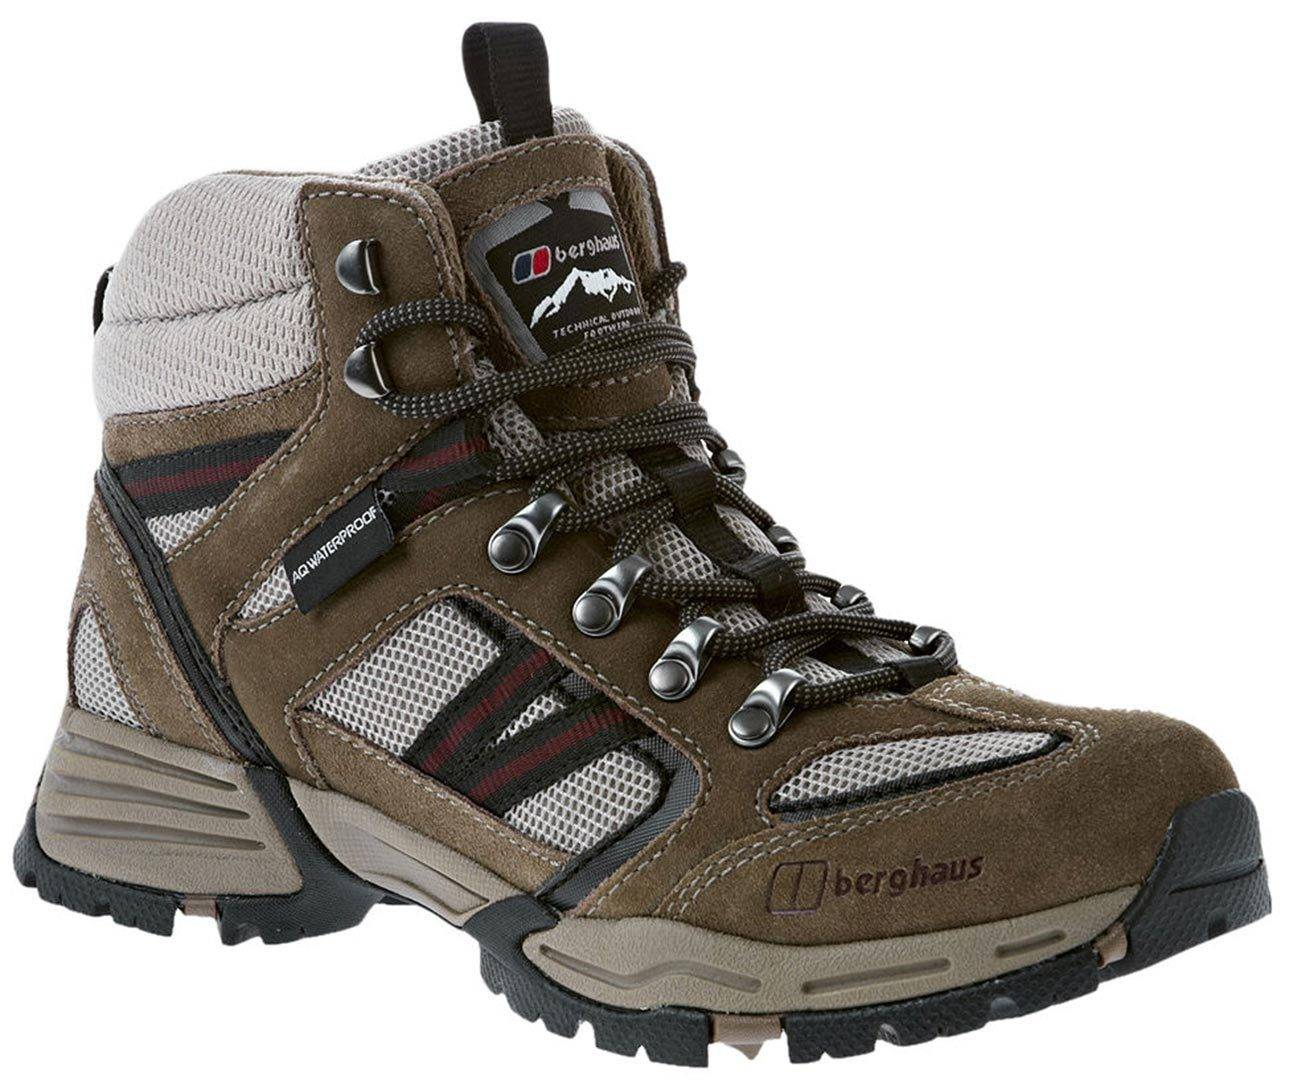 Berghaus Expeditor AQ Suede Lady Marrone 5